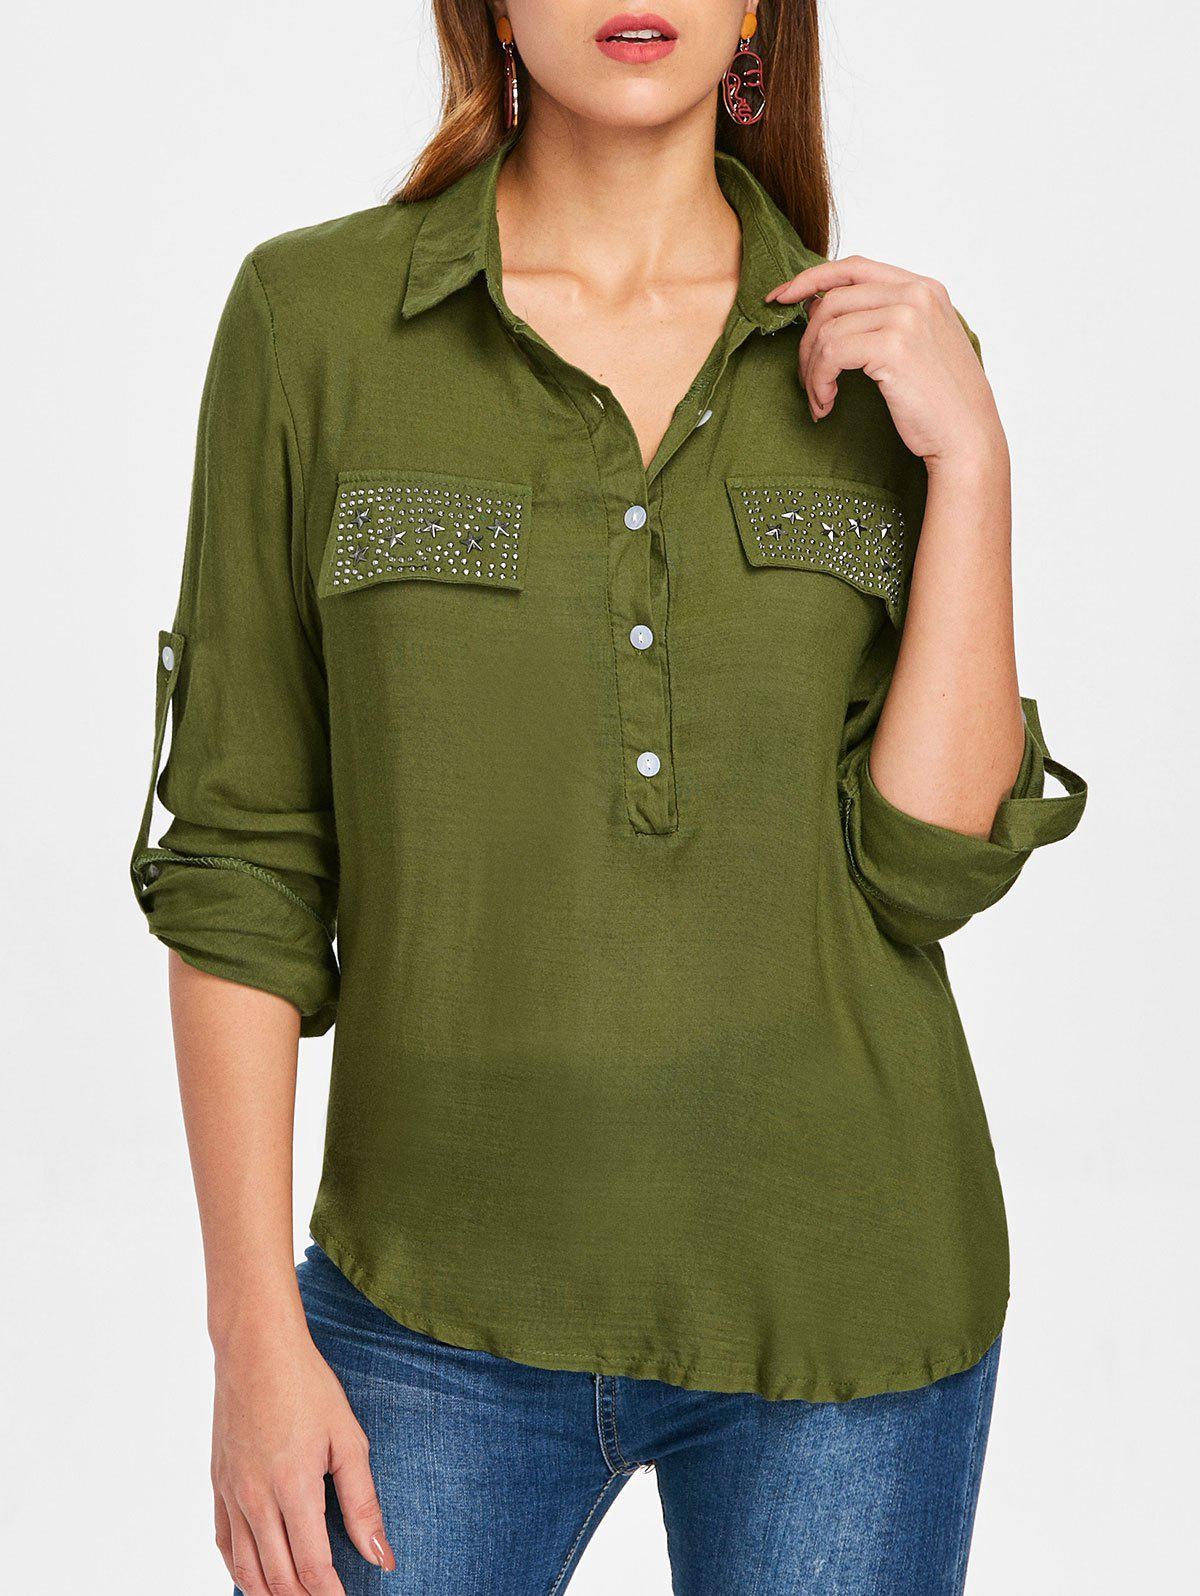 Long Sleeve Rhinestone Pockets Shirt - ARMY GREEN M